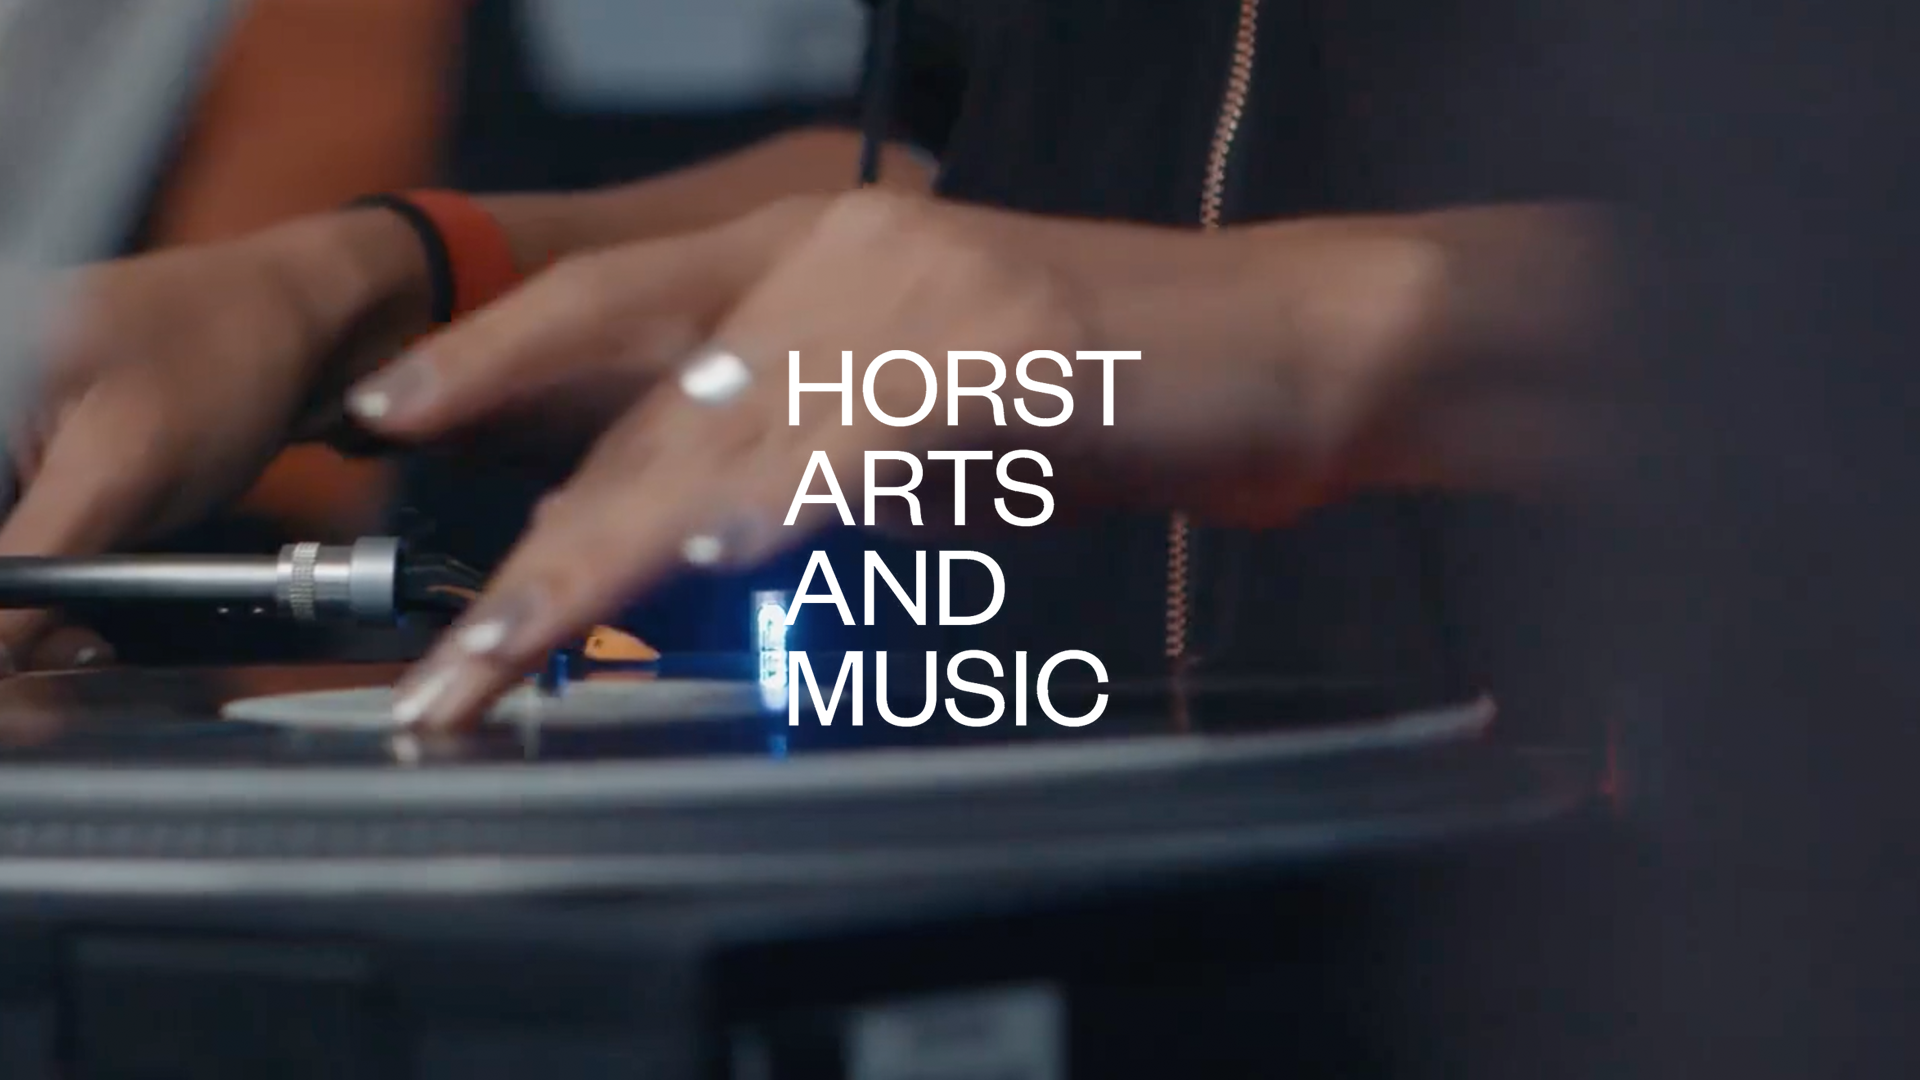 Horst Arts and Music